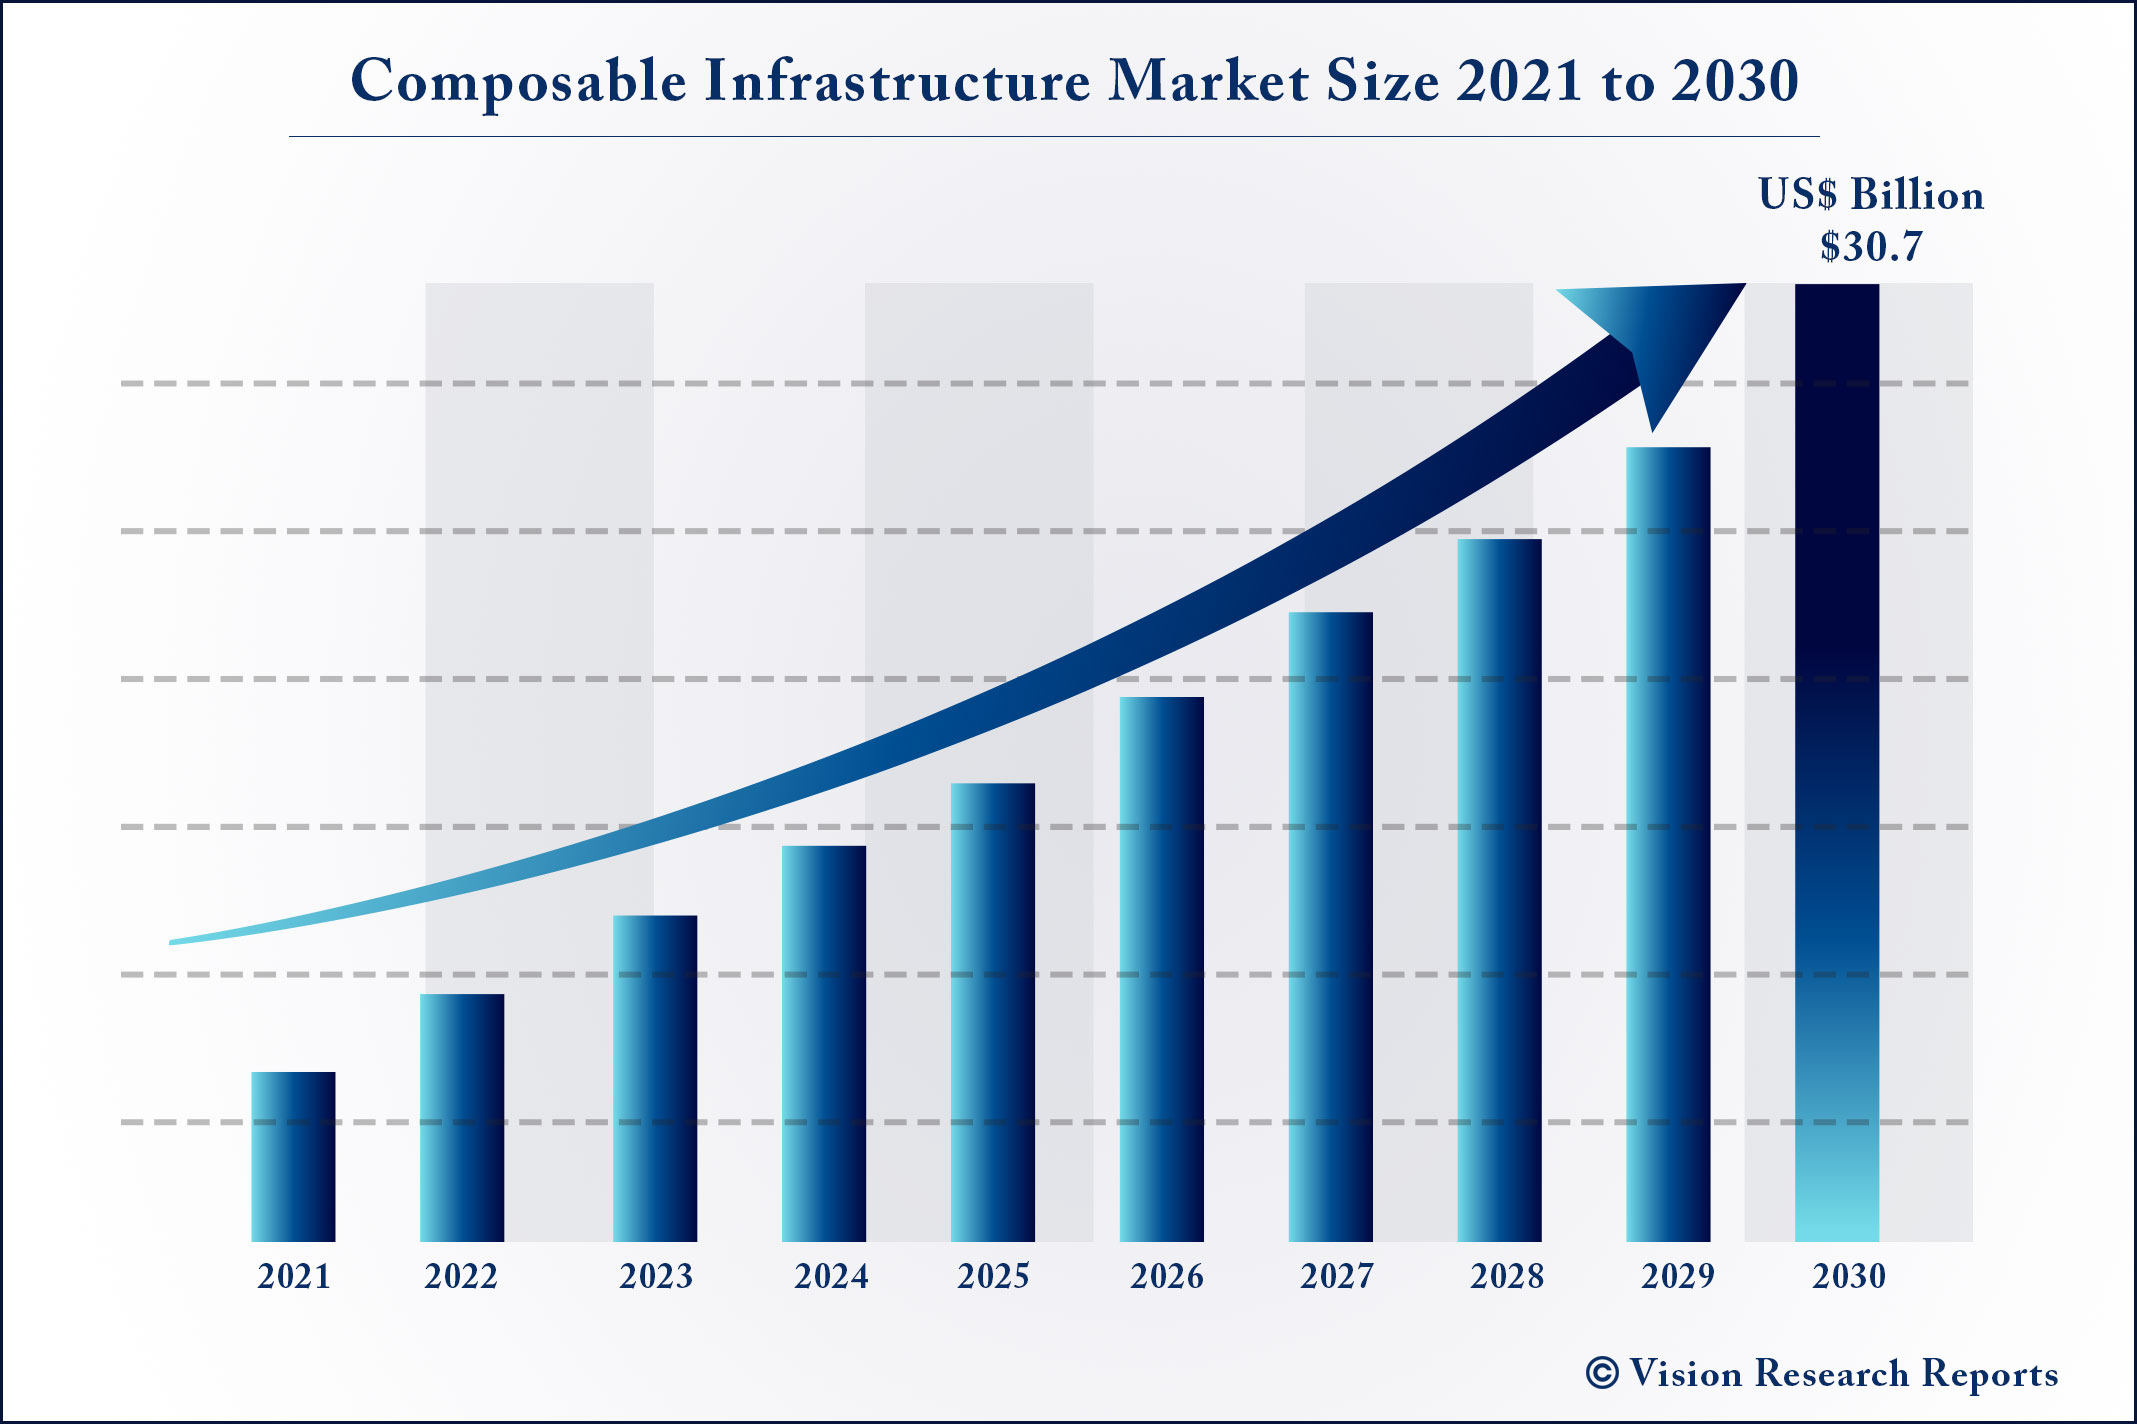 Composable Infrastructure Market Size 2021 to 2030